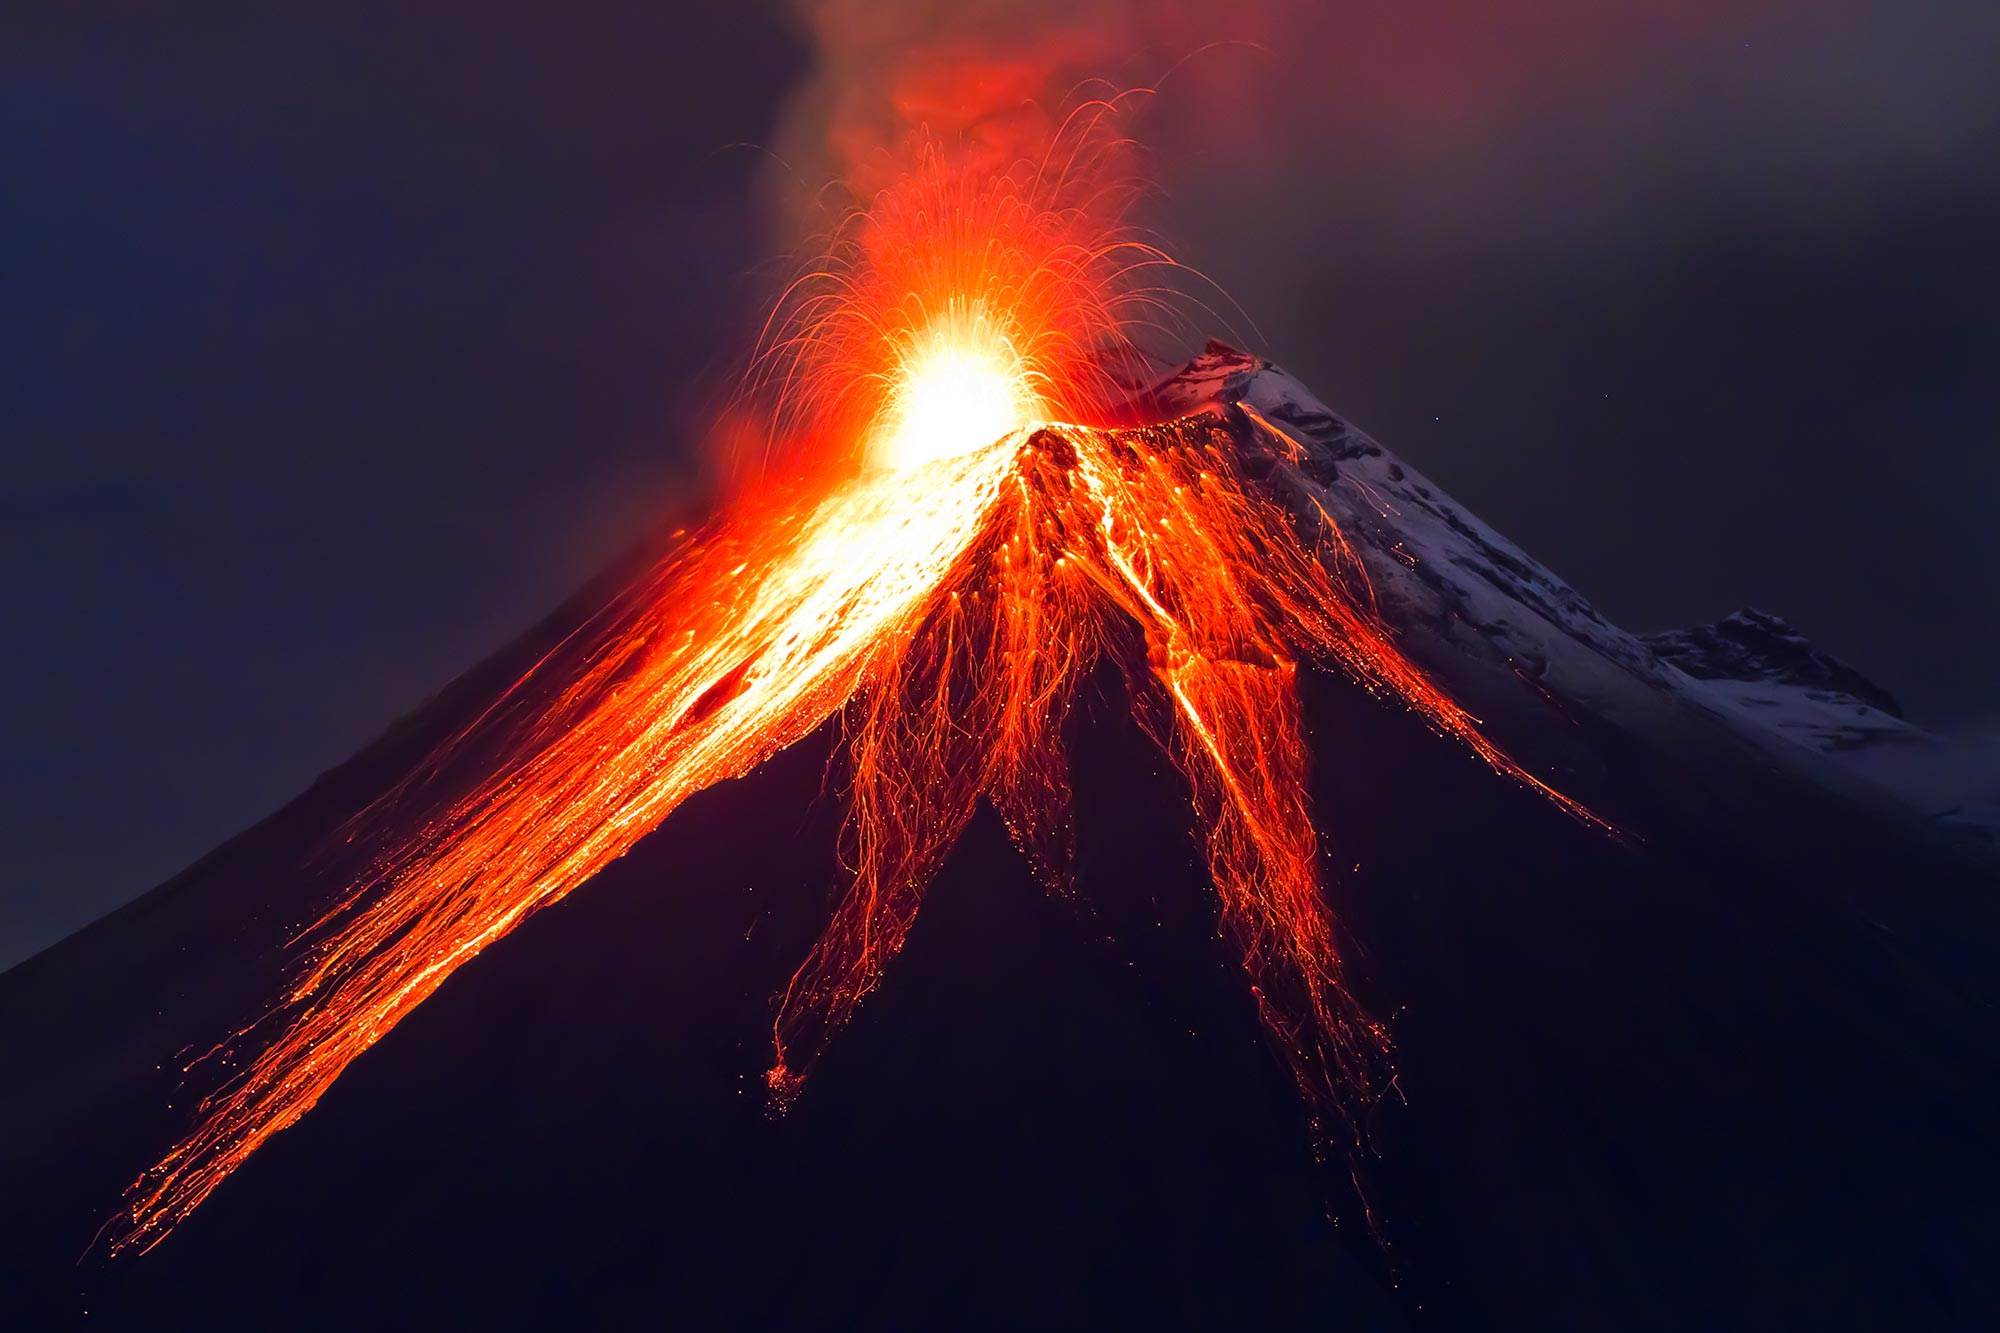 """Tungurahua Volcano """"The Black Giant"""" Showing Warning Signs of """"Potential Collapse"""" - SciTechDaily"""